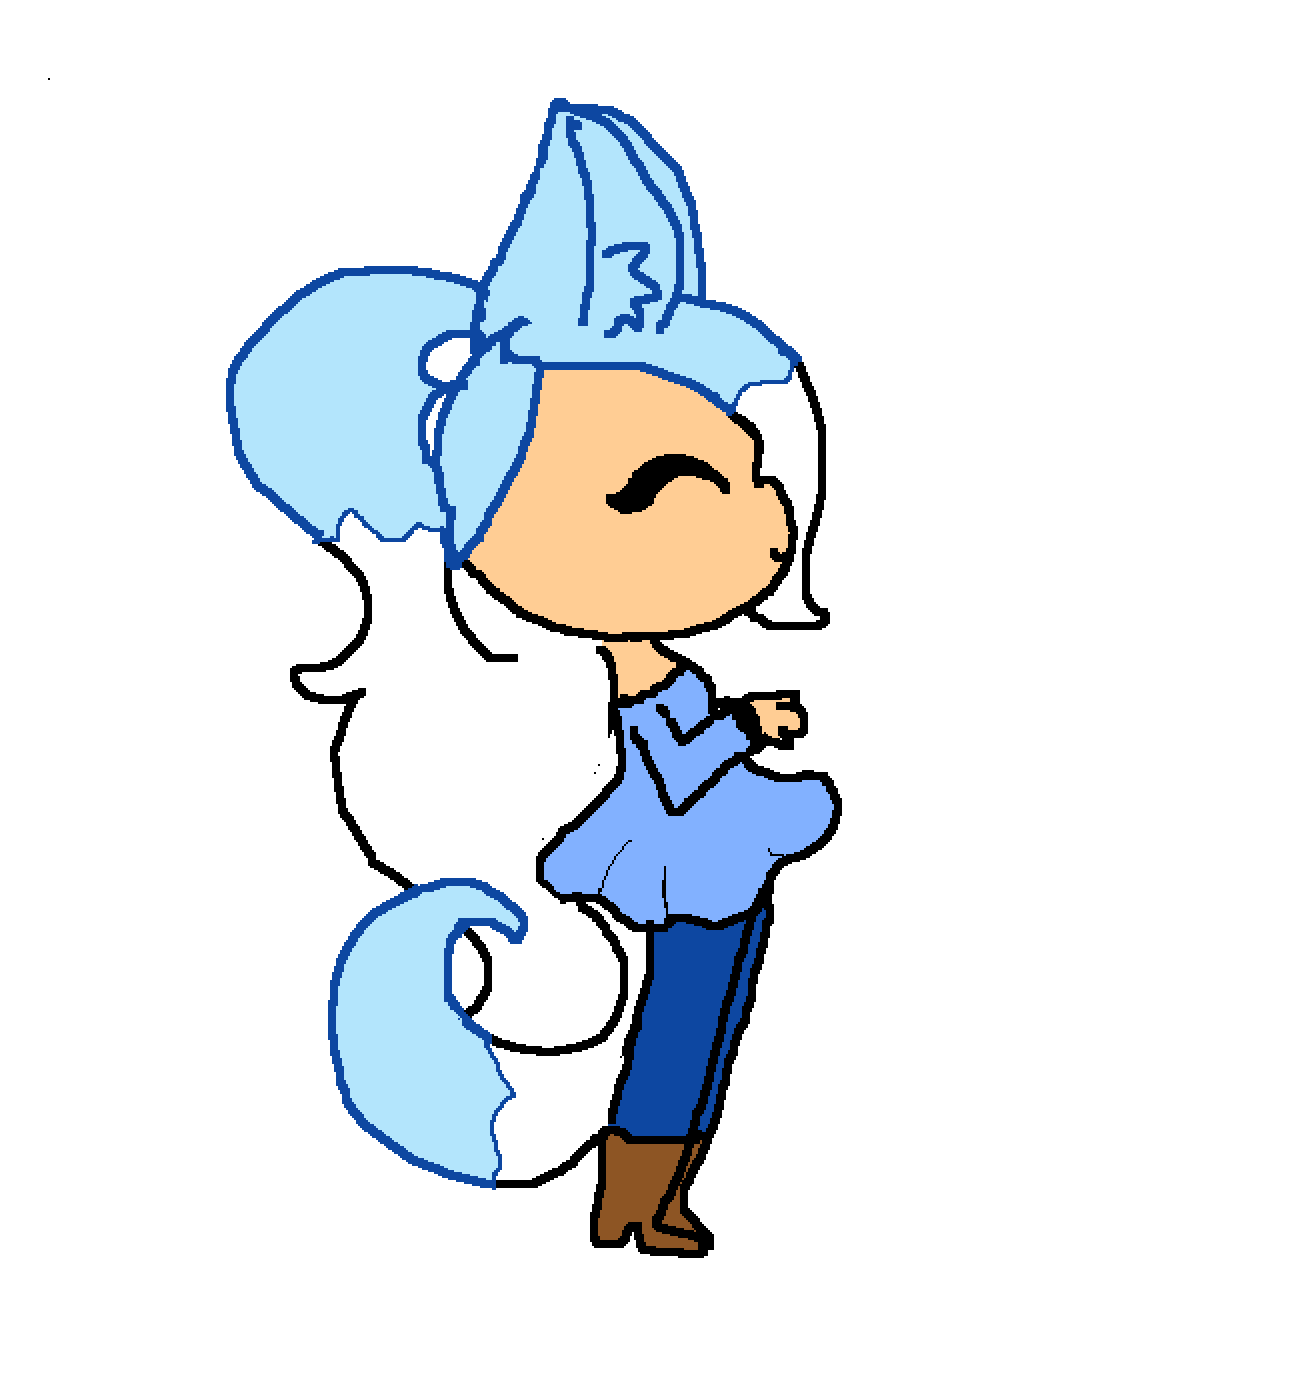 Frost My New Oc Flares sister